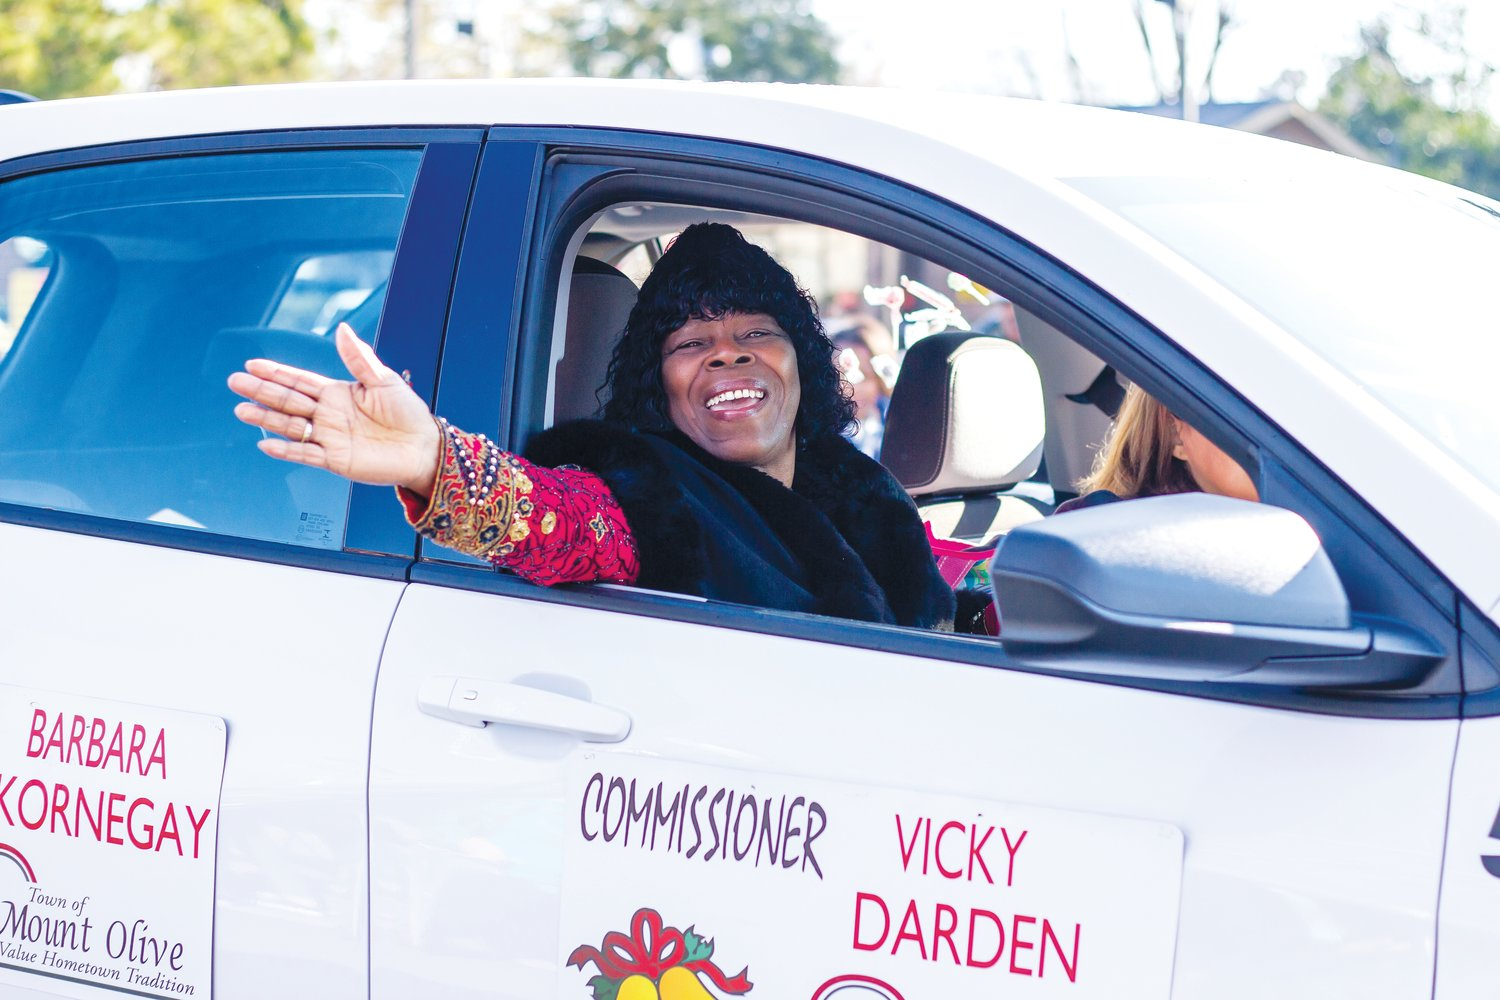 Commissioner Vicky Darden waves to bystanders and wishes them Merry Christmas as she drives by in the Mount Olive Christmas Parade.